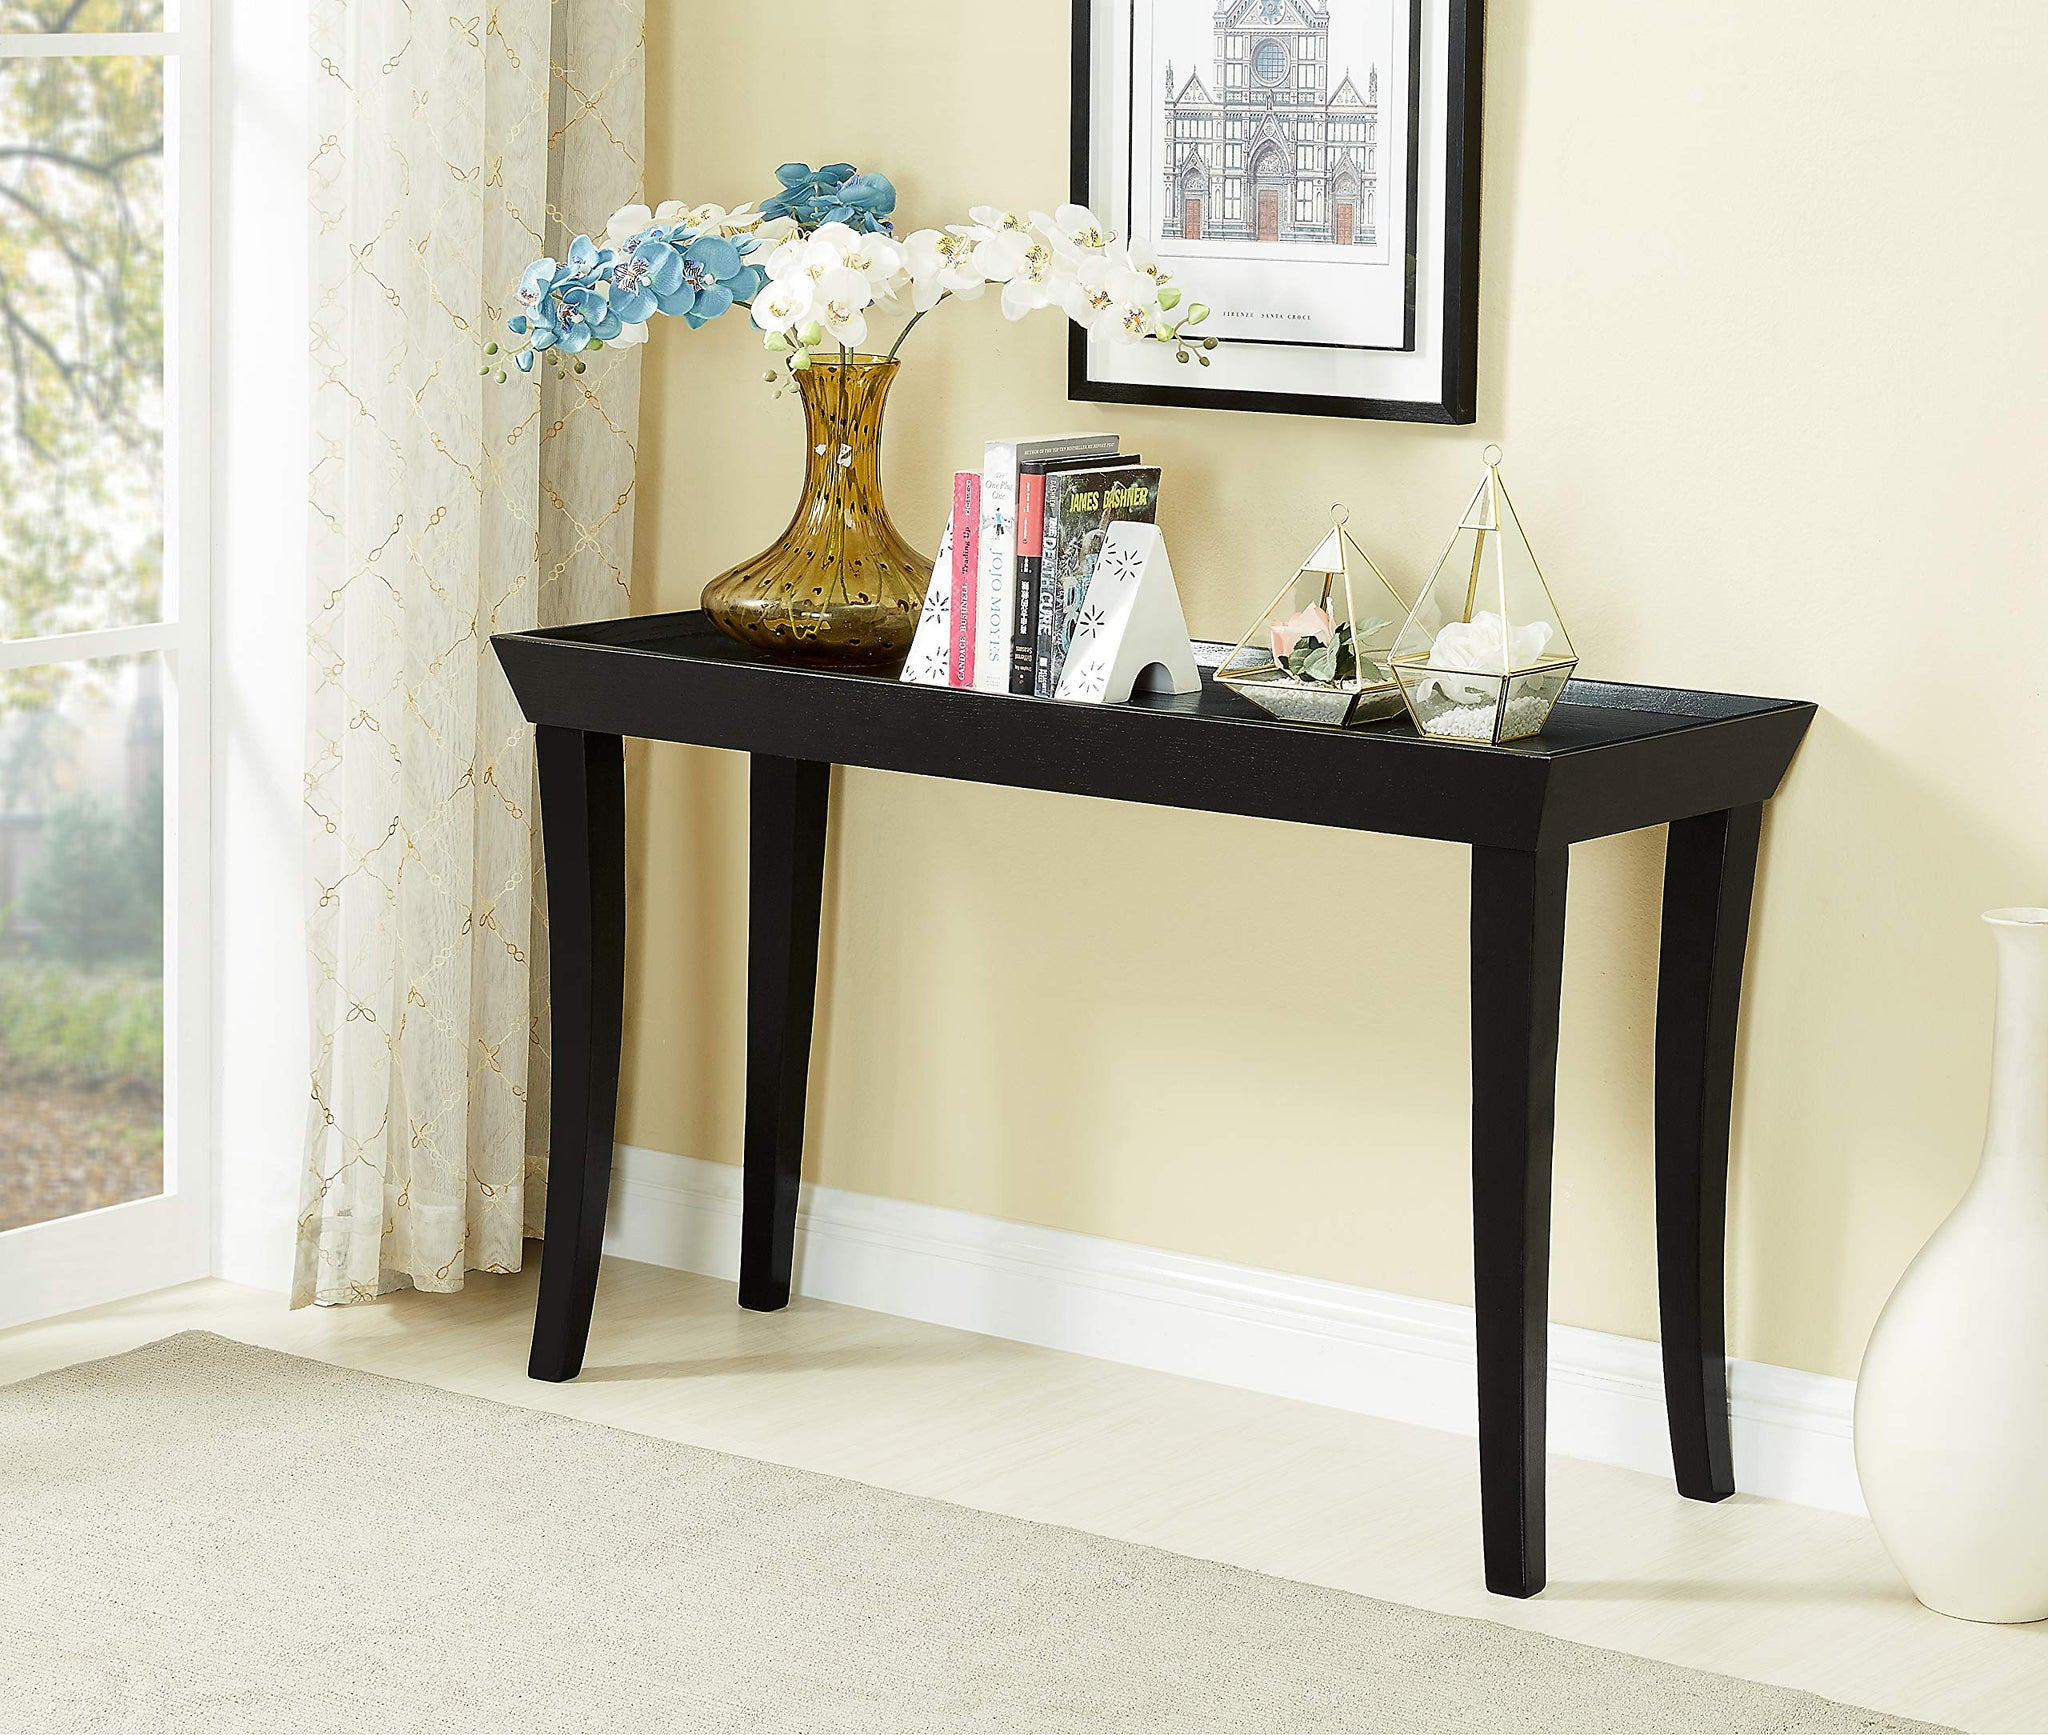 GTU Furntiure Black Contemporary Black Rectangular Sofa Table